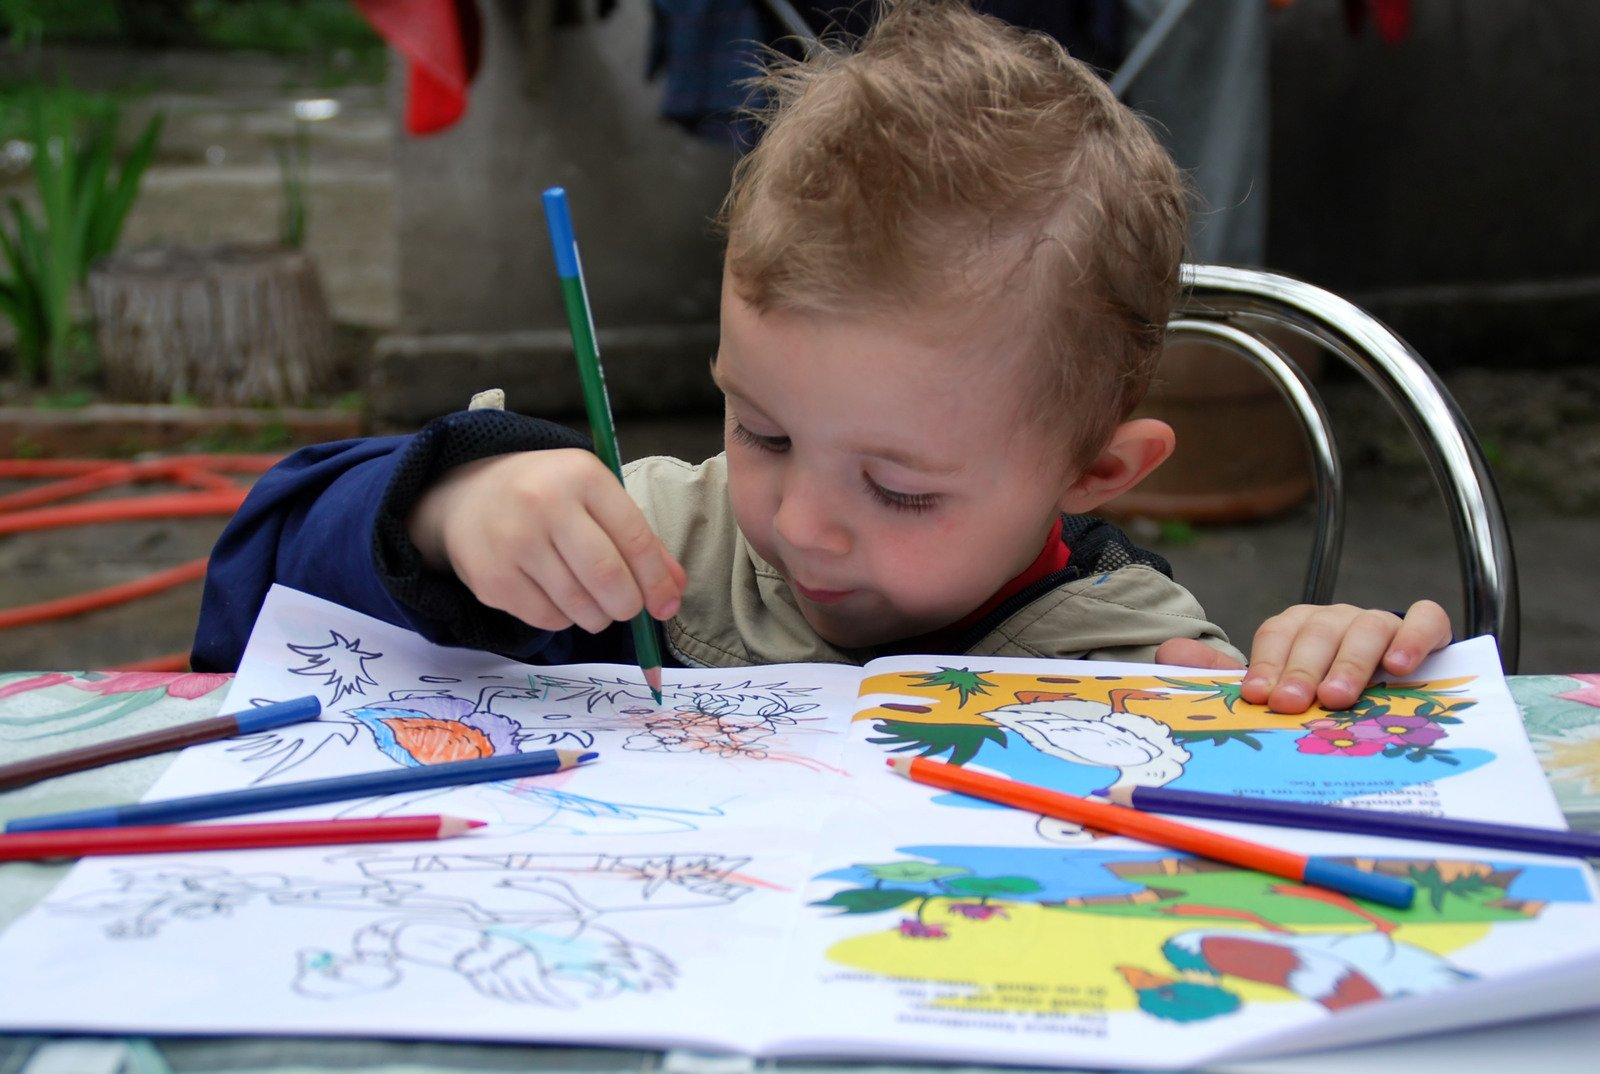 Free Child colouring a book Stock Photo - FreeImages.com